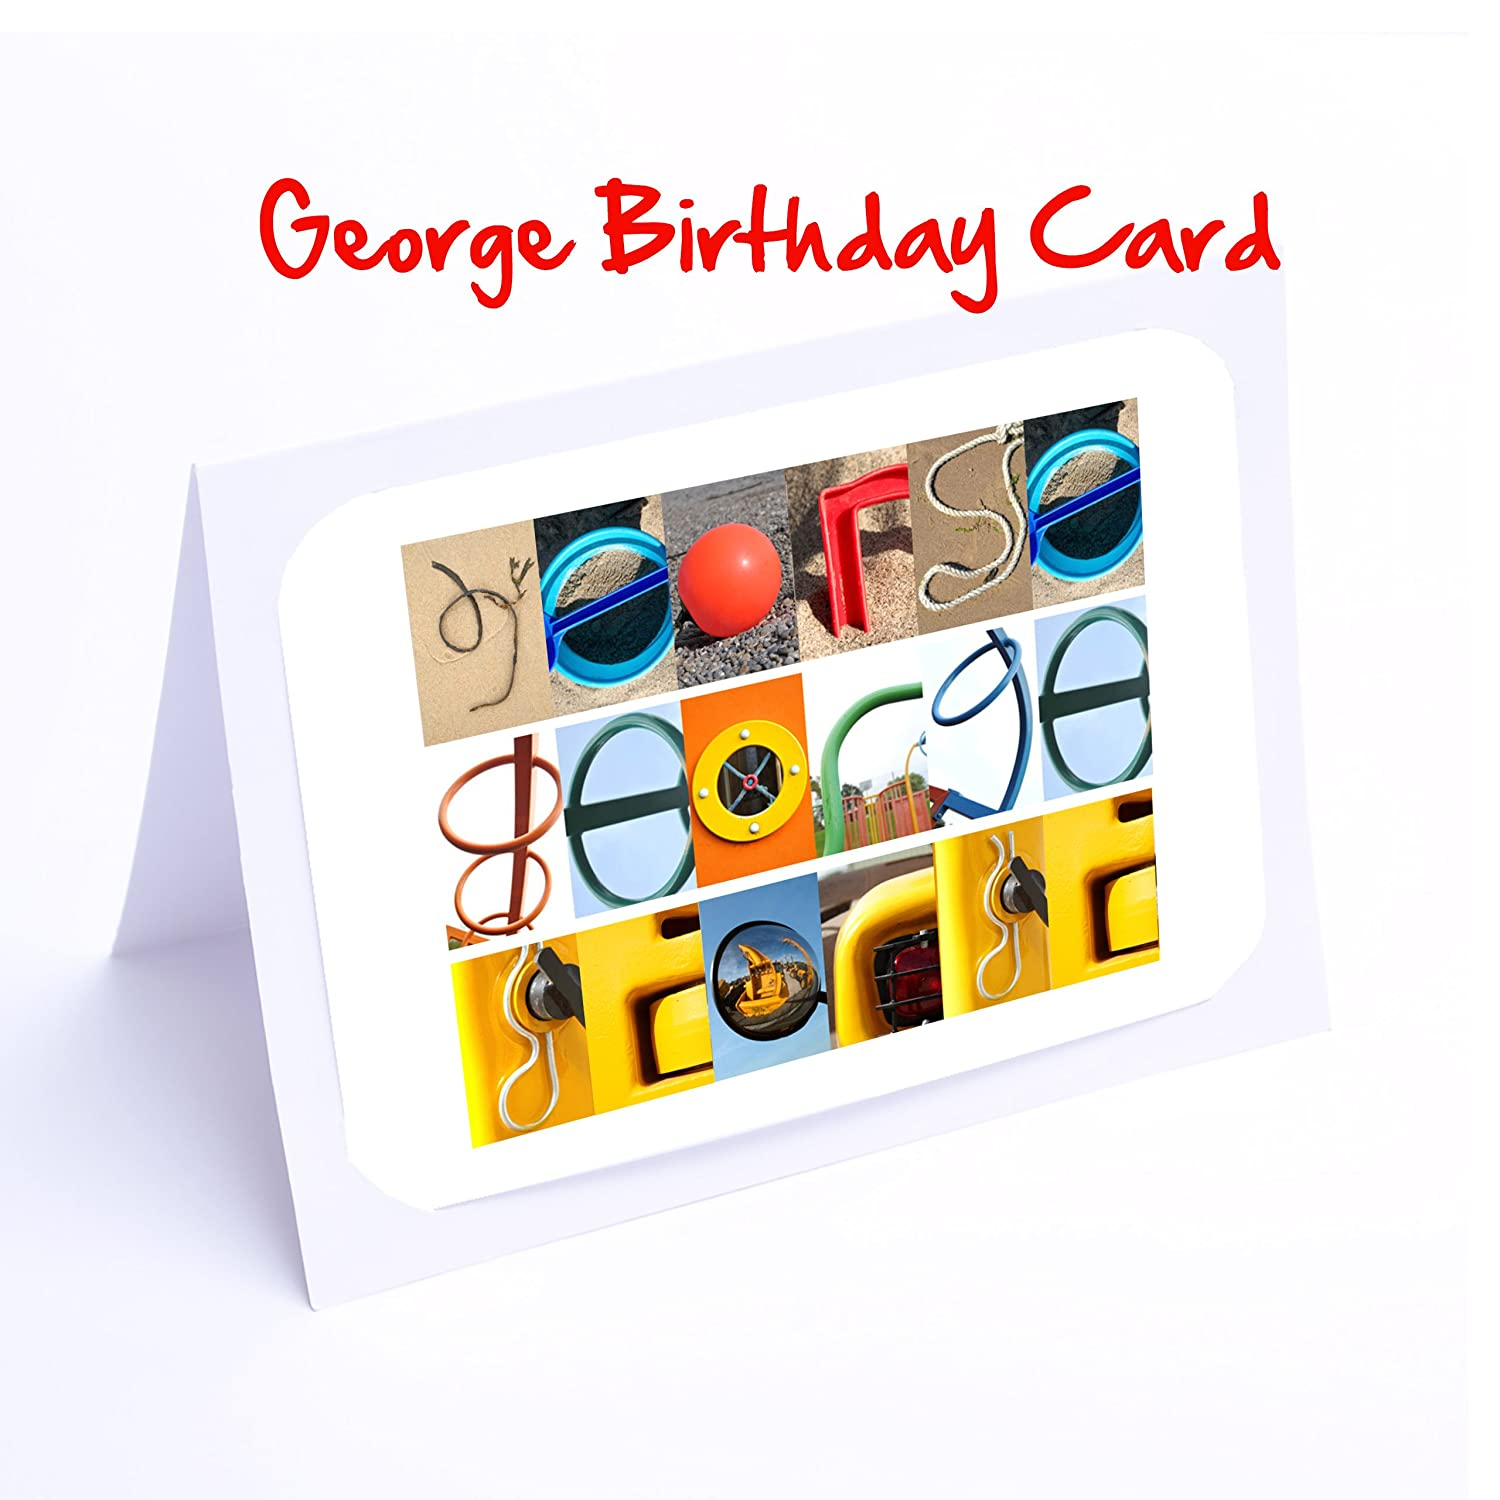 Personalised Name Gifts For Kids George 7x5 photo print.